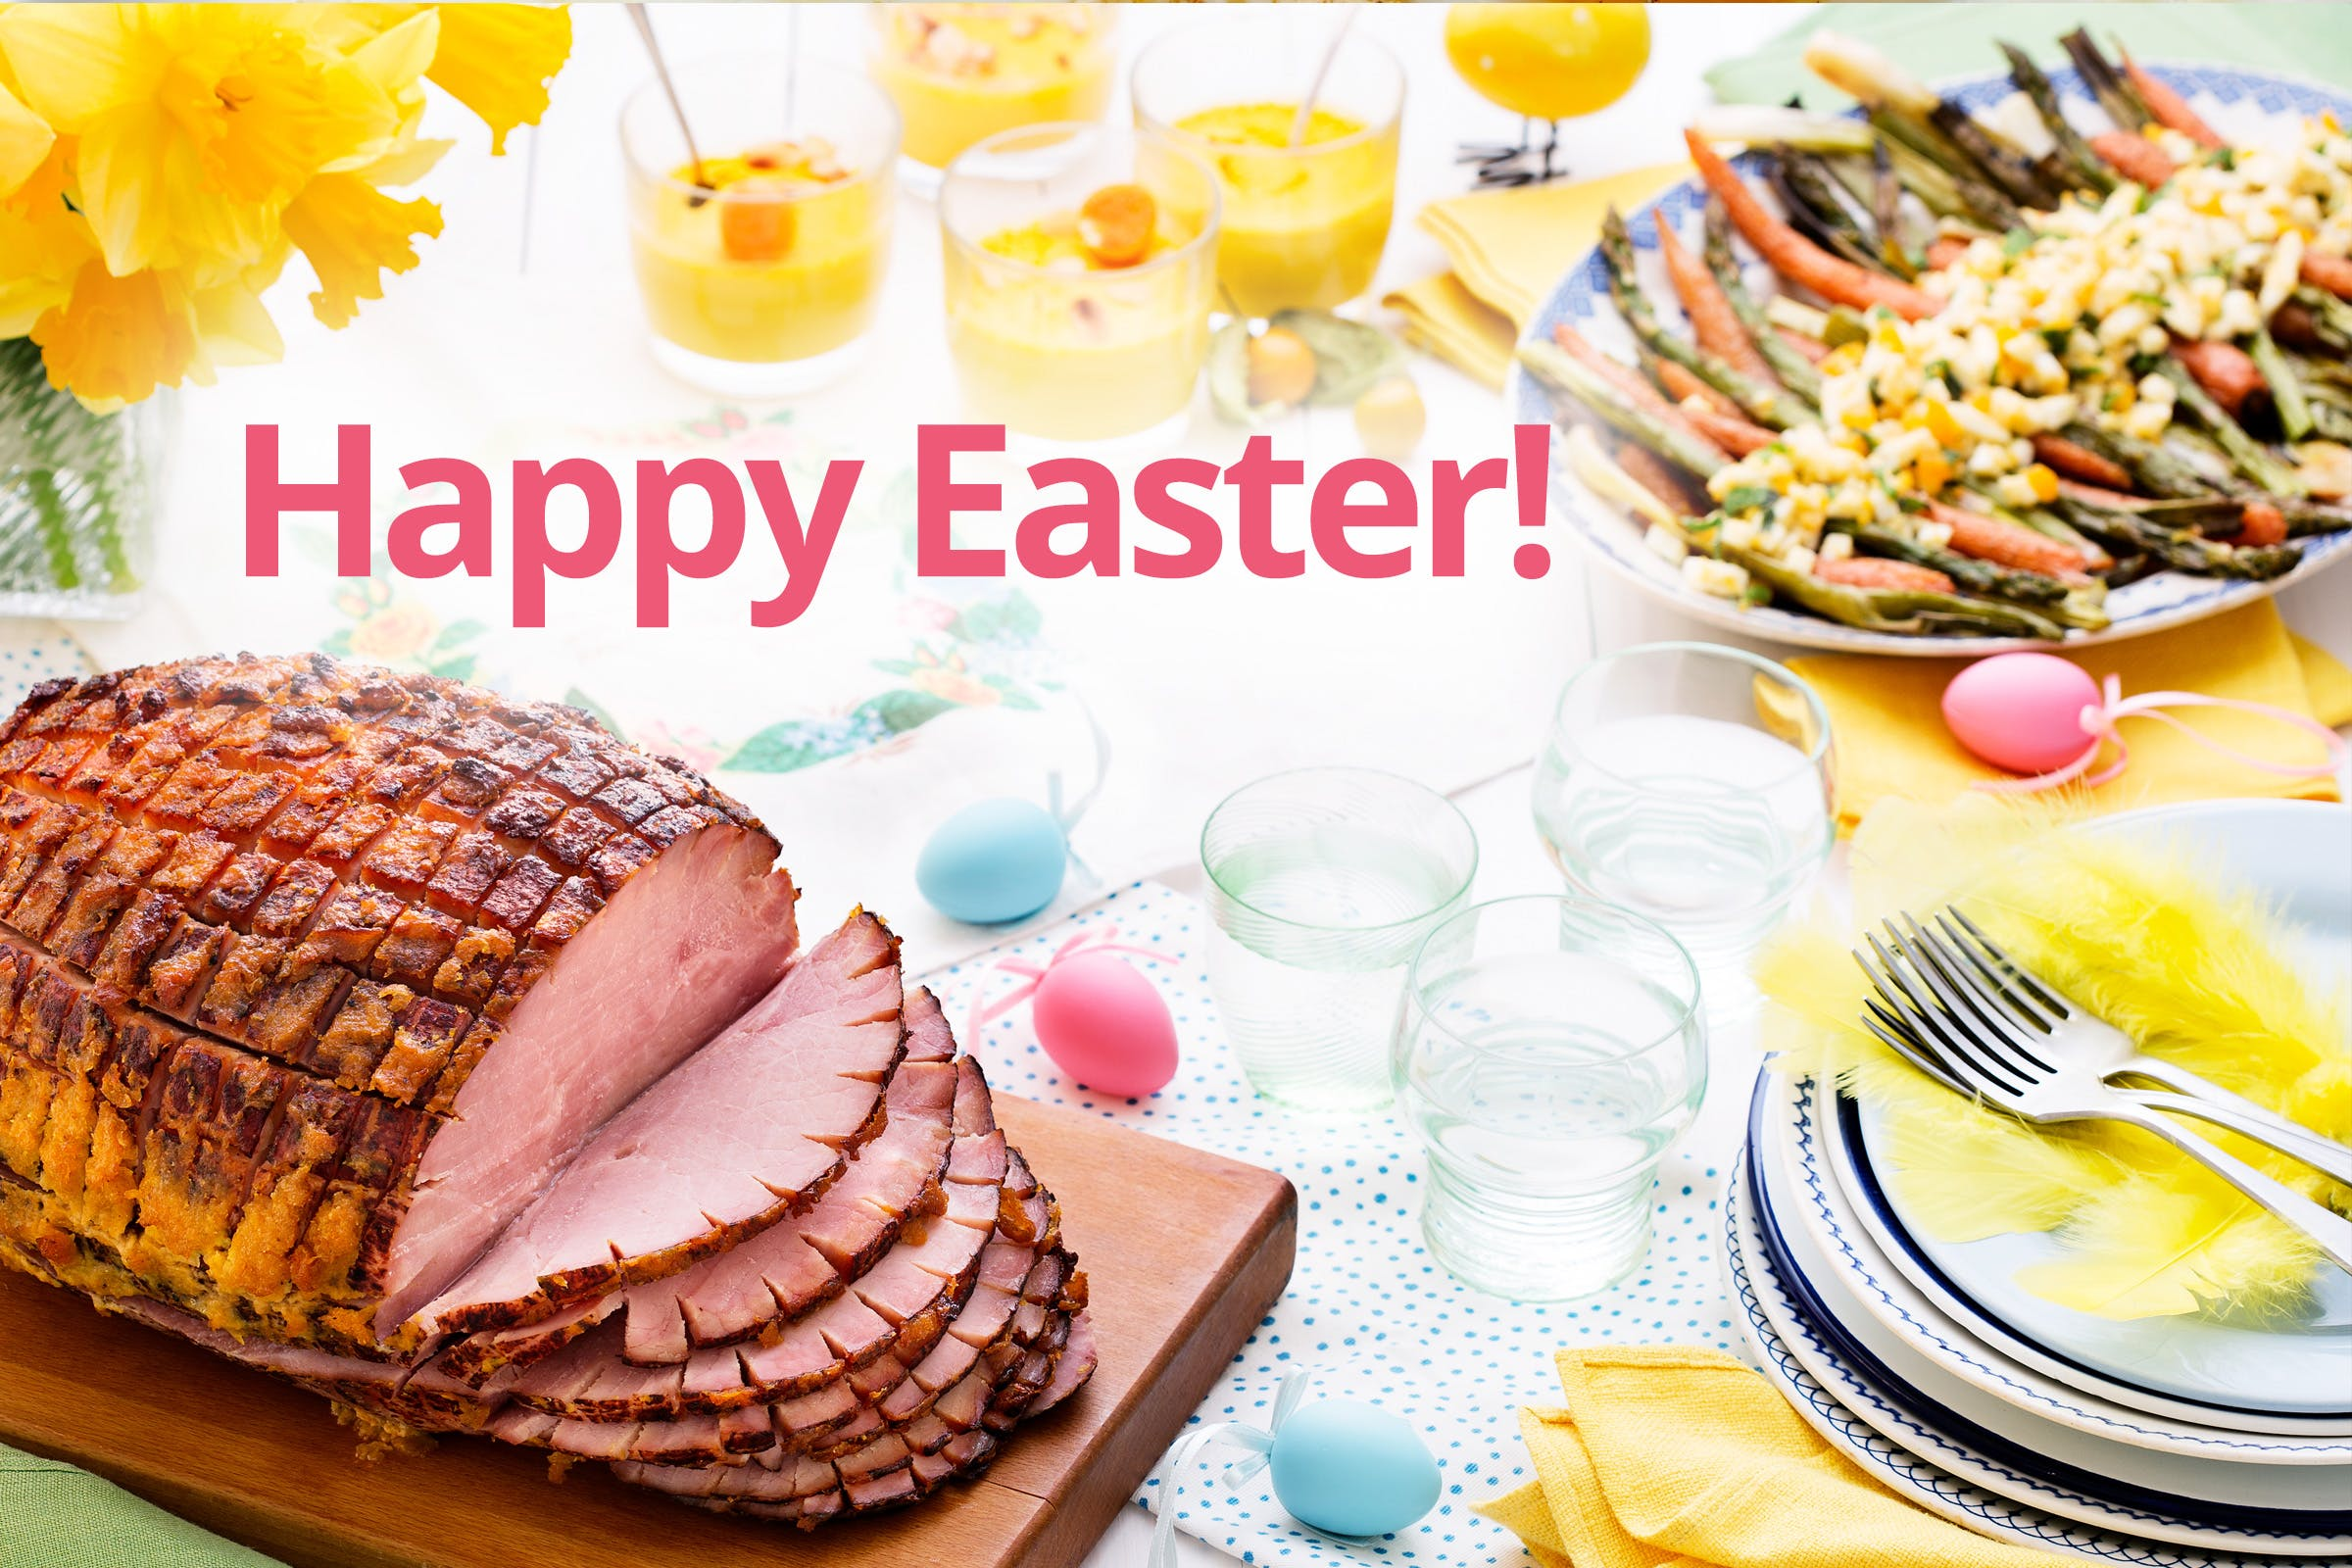 Happy low-carb Easter!